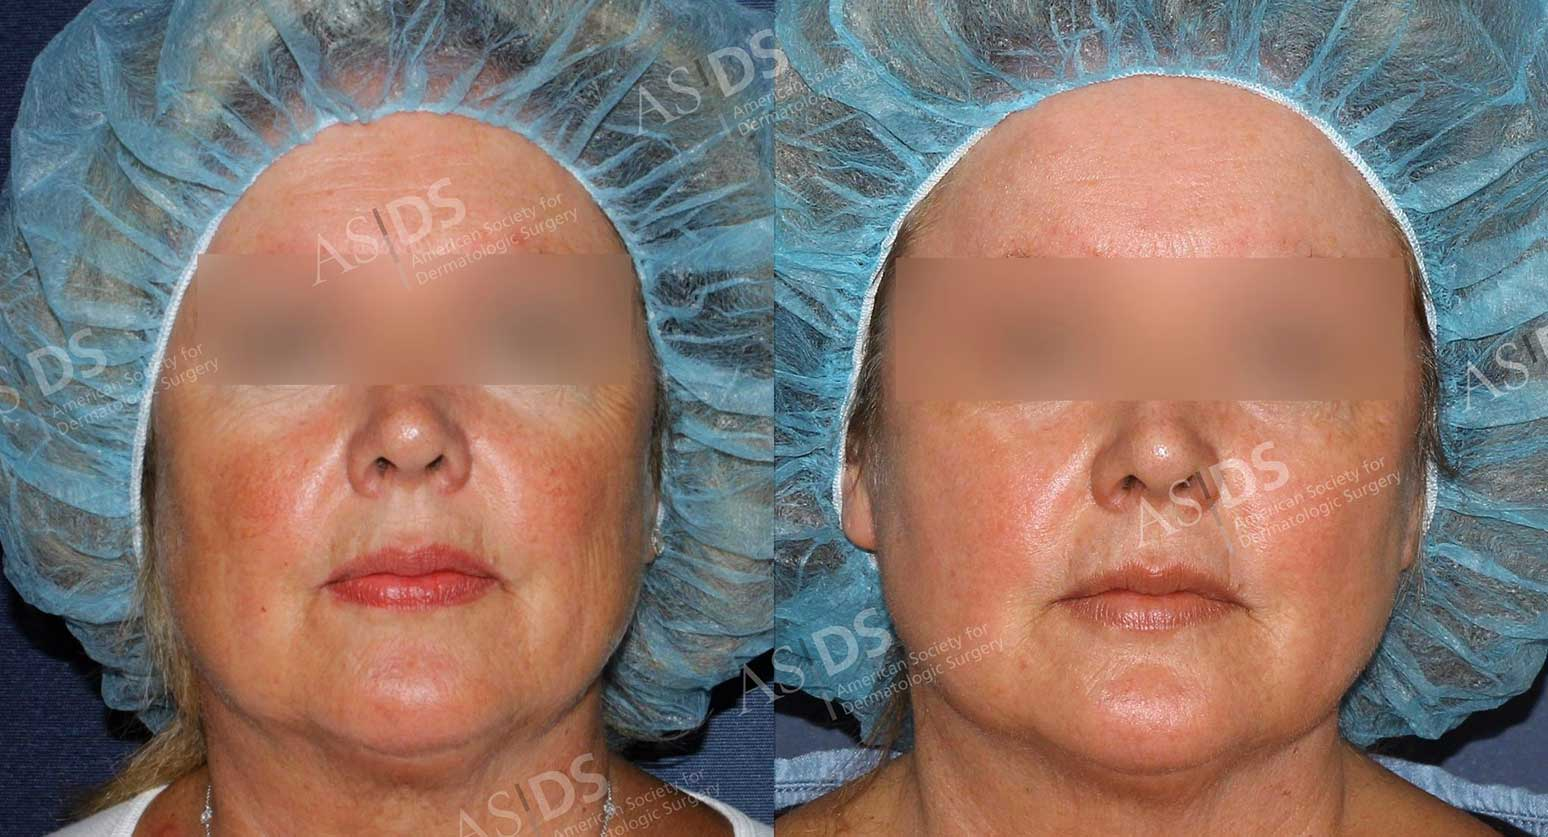 Before (left) and after (right) face - rosacea, solar lentigenes, and photodamage treatment.